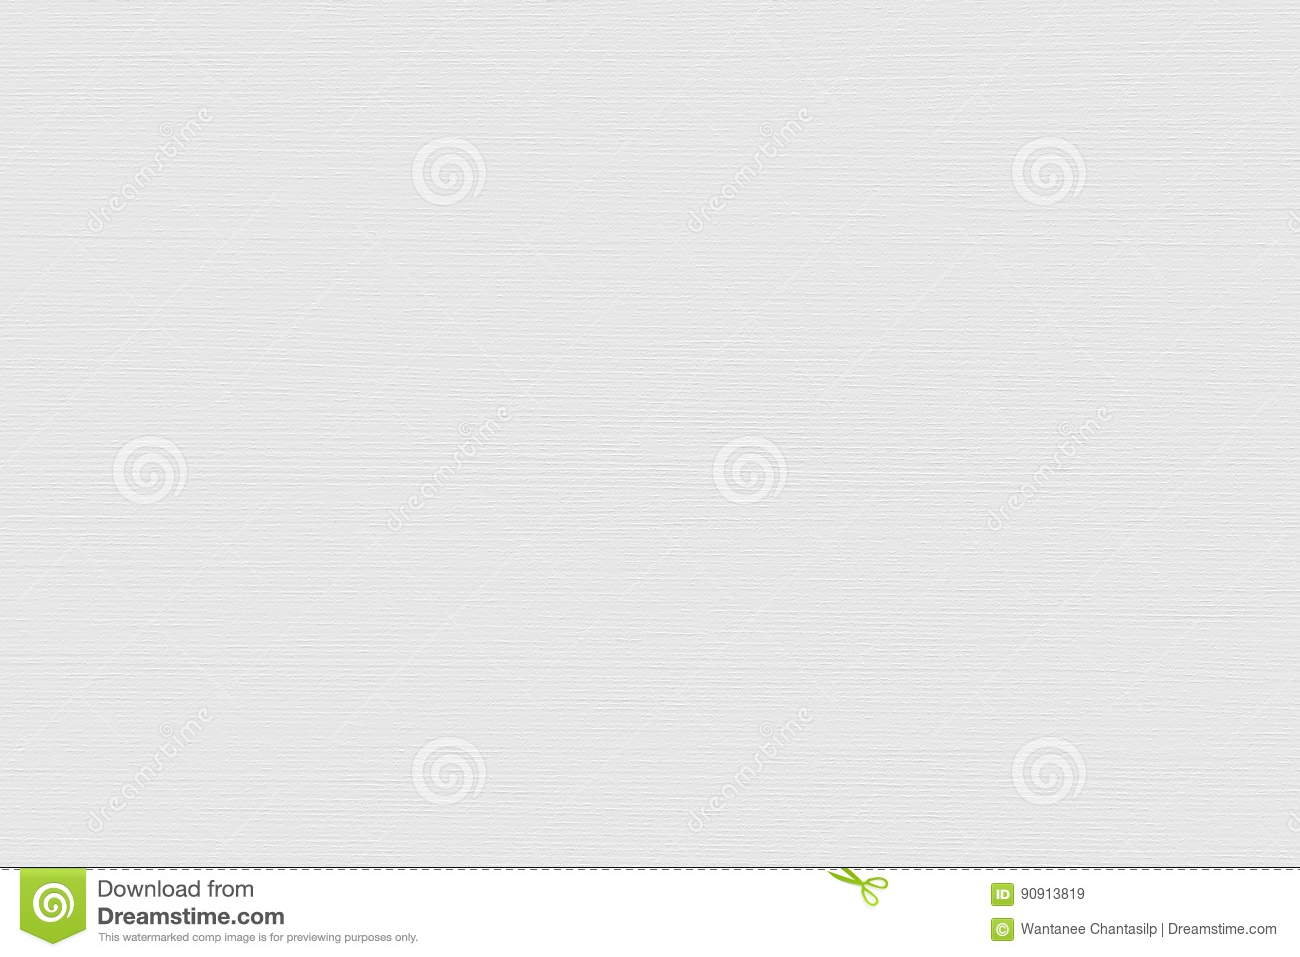 white paper textured background with thin horizontal lines stock